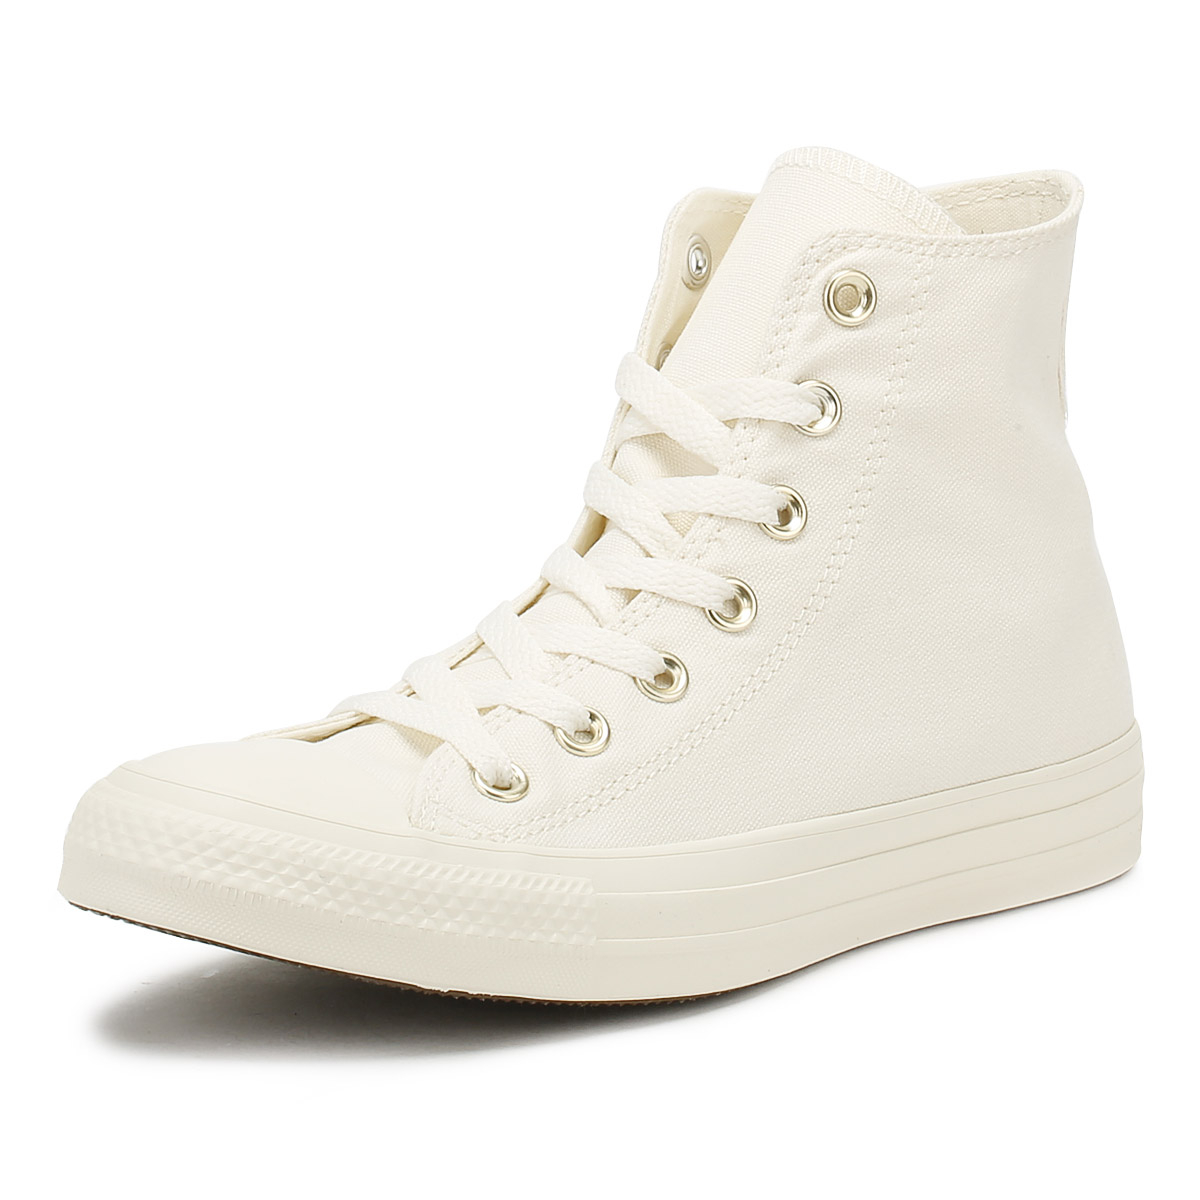 3a0a6956fa64 Details about Converse Chuck Taylor All Star Womens Hi Trainers Egret   Gold  Lace Up Shoes